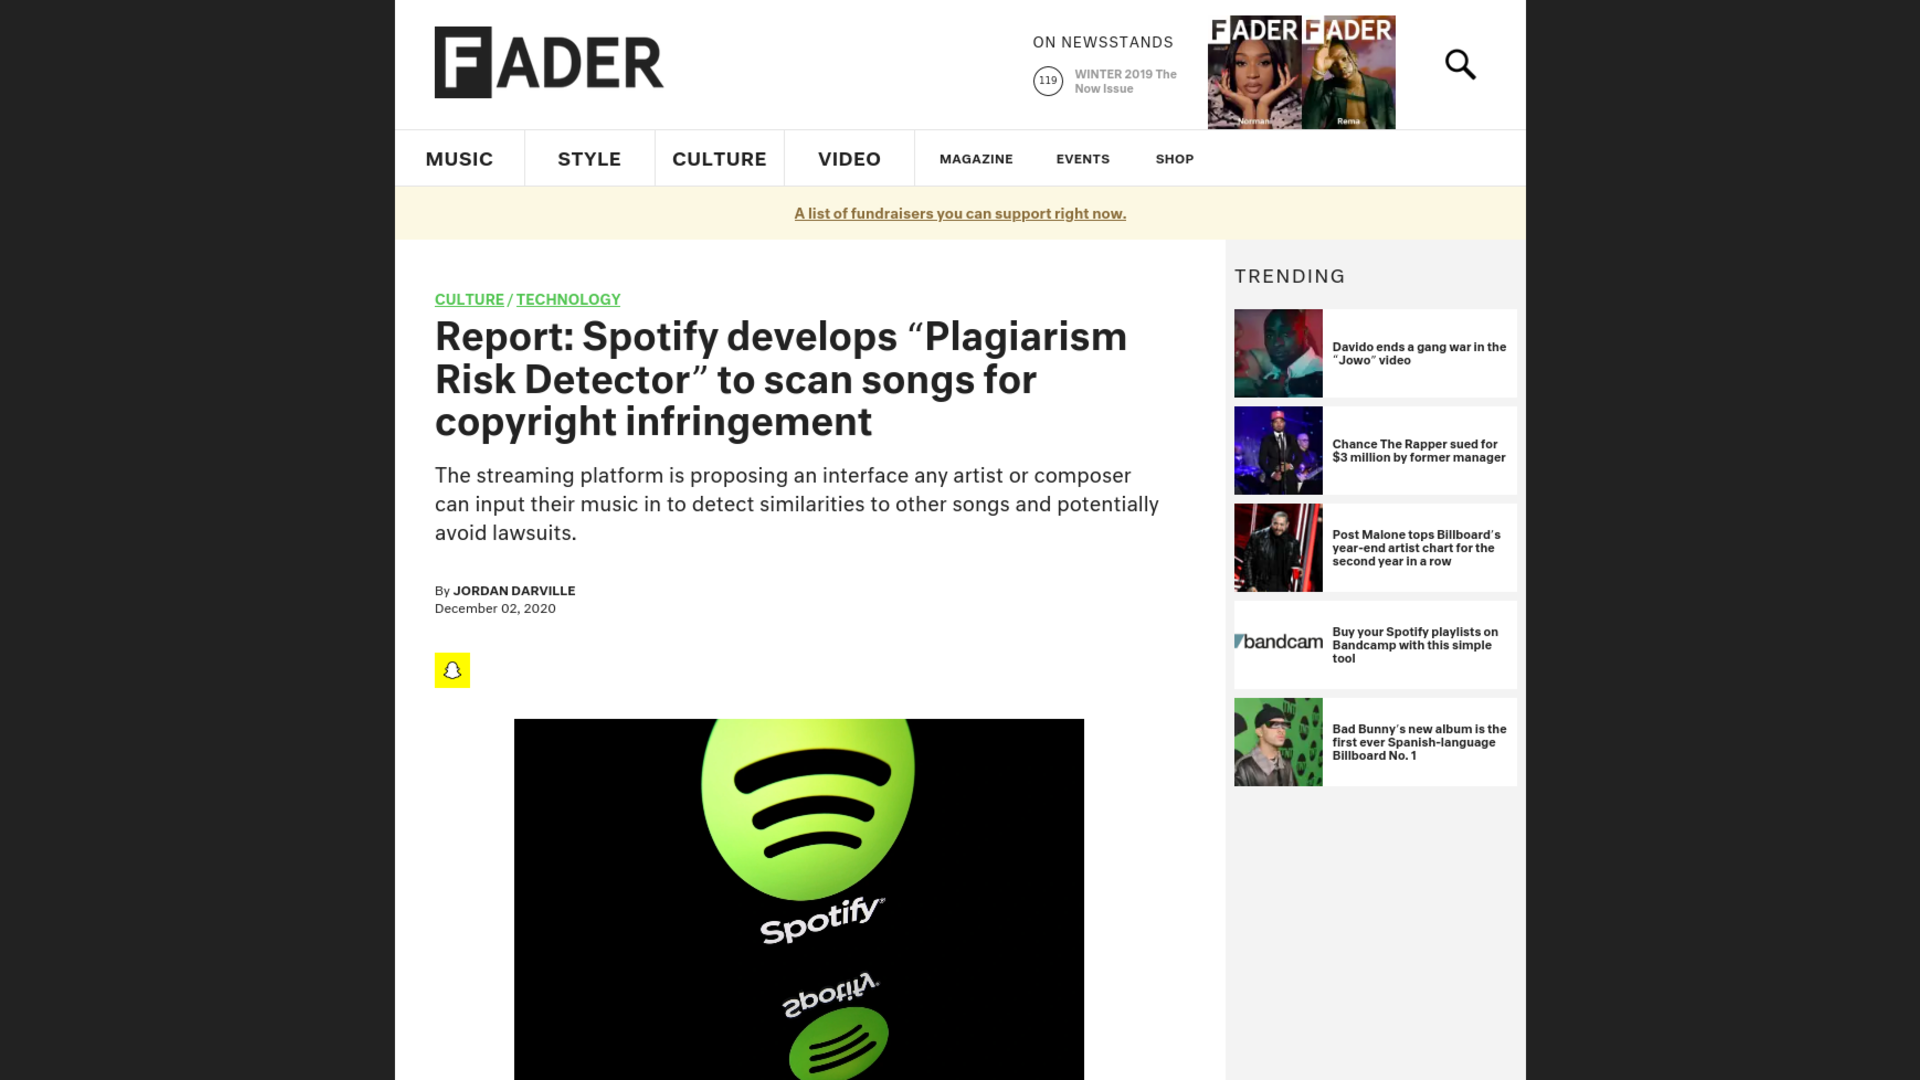 """Fairness Rocks News Report: Spotify develops """"Plagiarism Risk Detector"""" to scan songs for copyright infringement"""